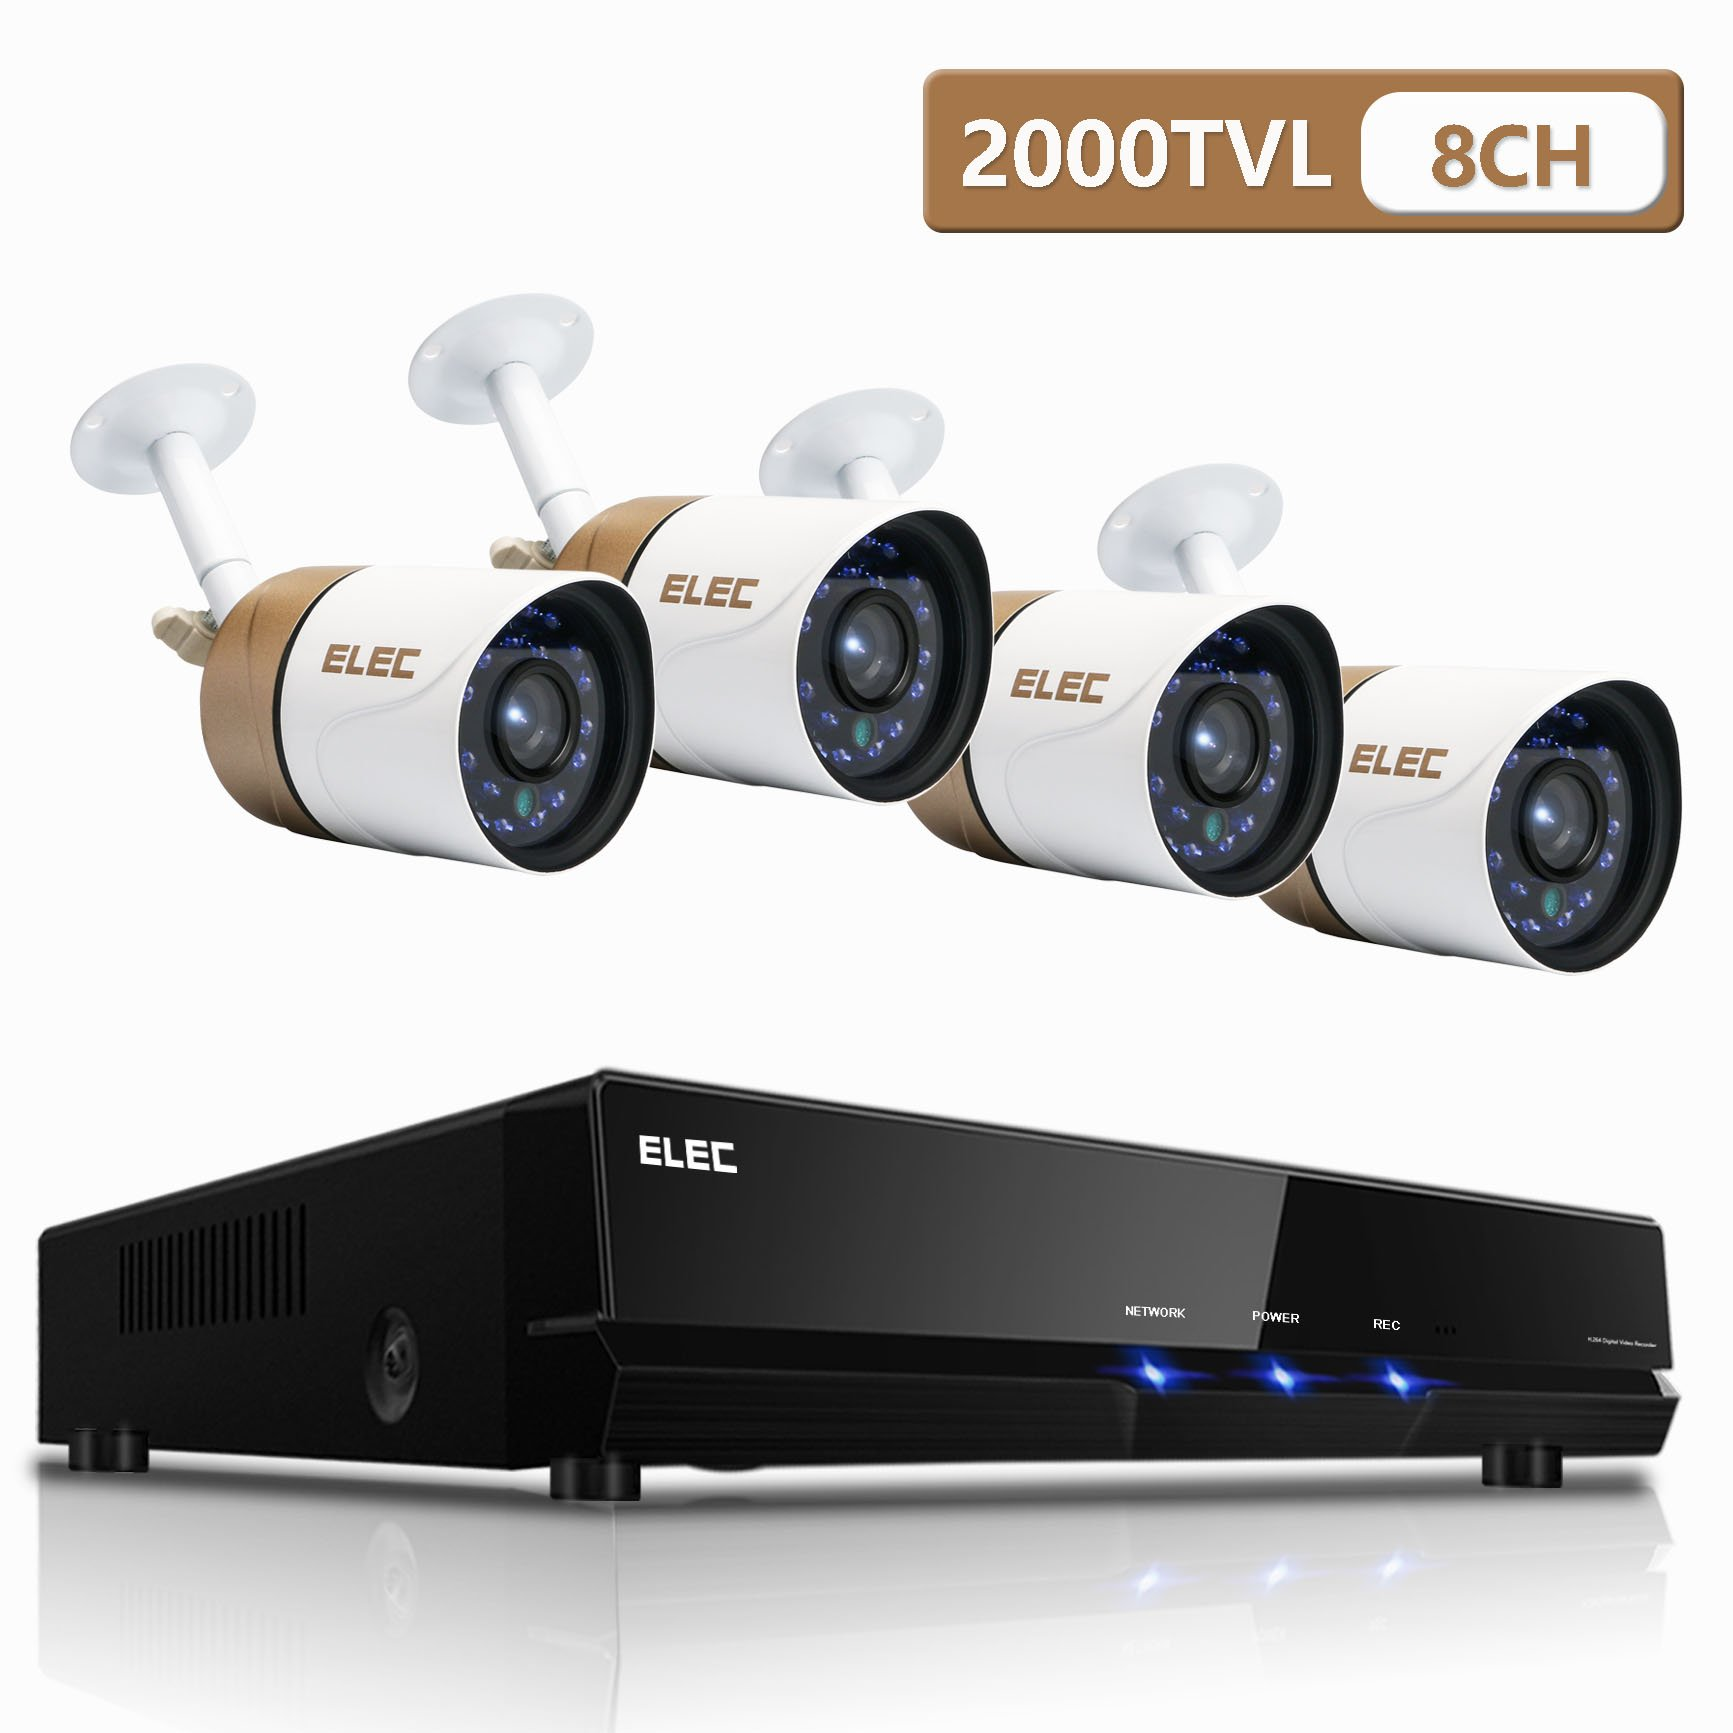 Security Camera System,ELEC 8-Channel AHD 1080N DVR HD 2000TVL Surveillance DVR Cameras CCTV+ 4 Weatherproof Bullet 1.3MP Cameras IR-Cut Night Vision, NO Hard Drive